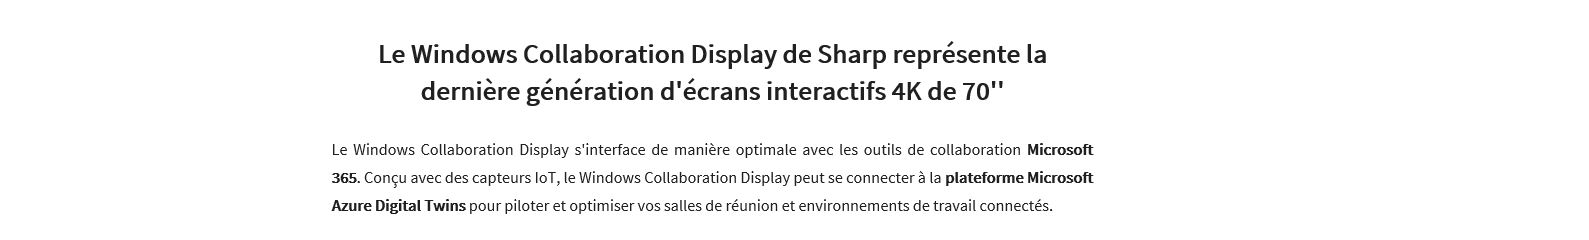 sharp windows collaboration dusplahy